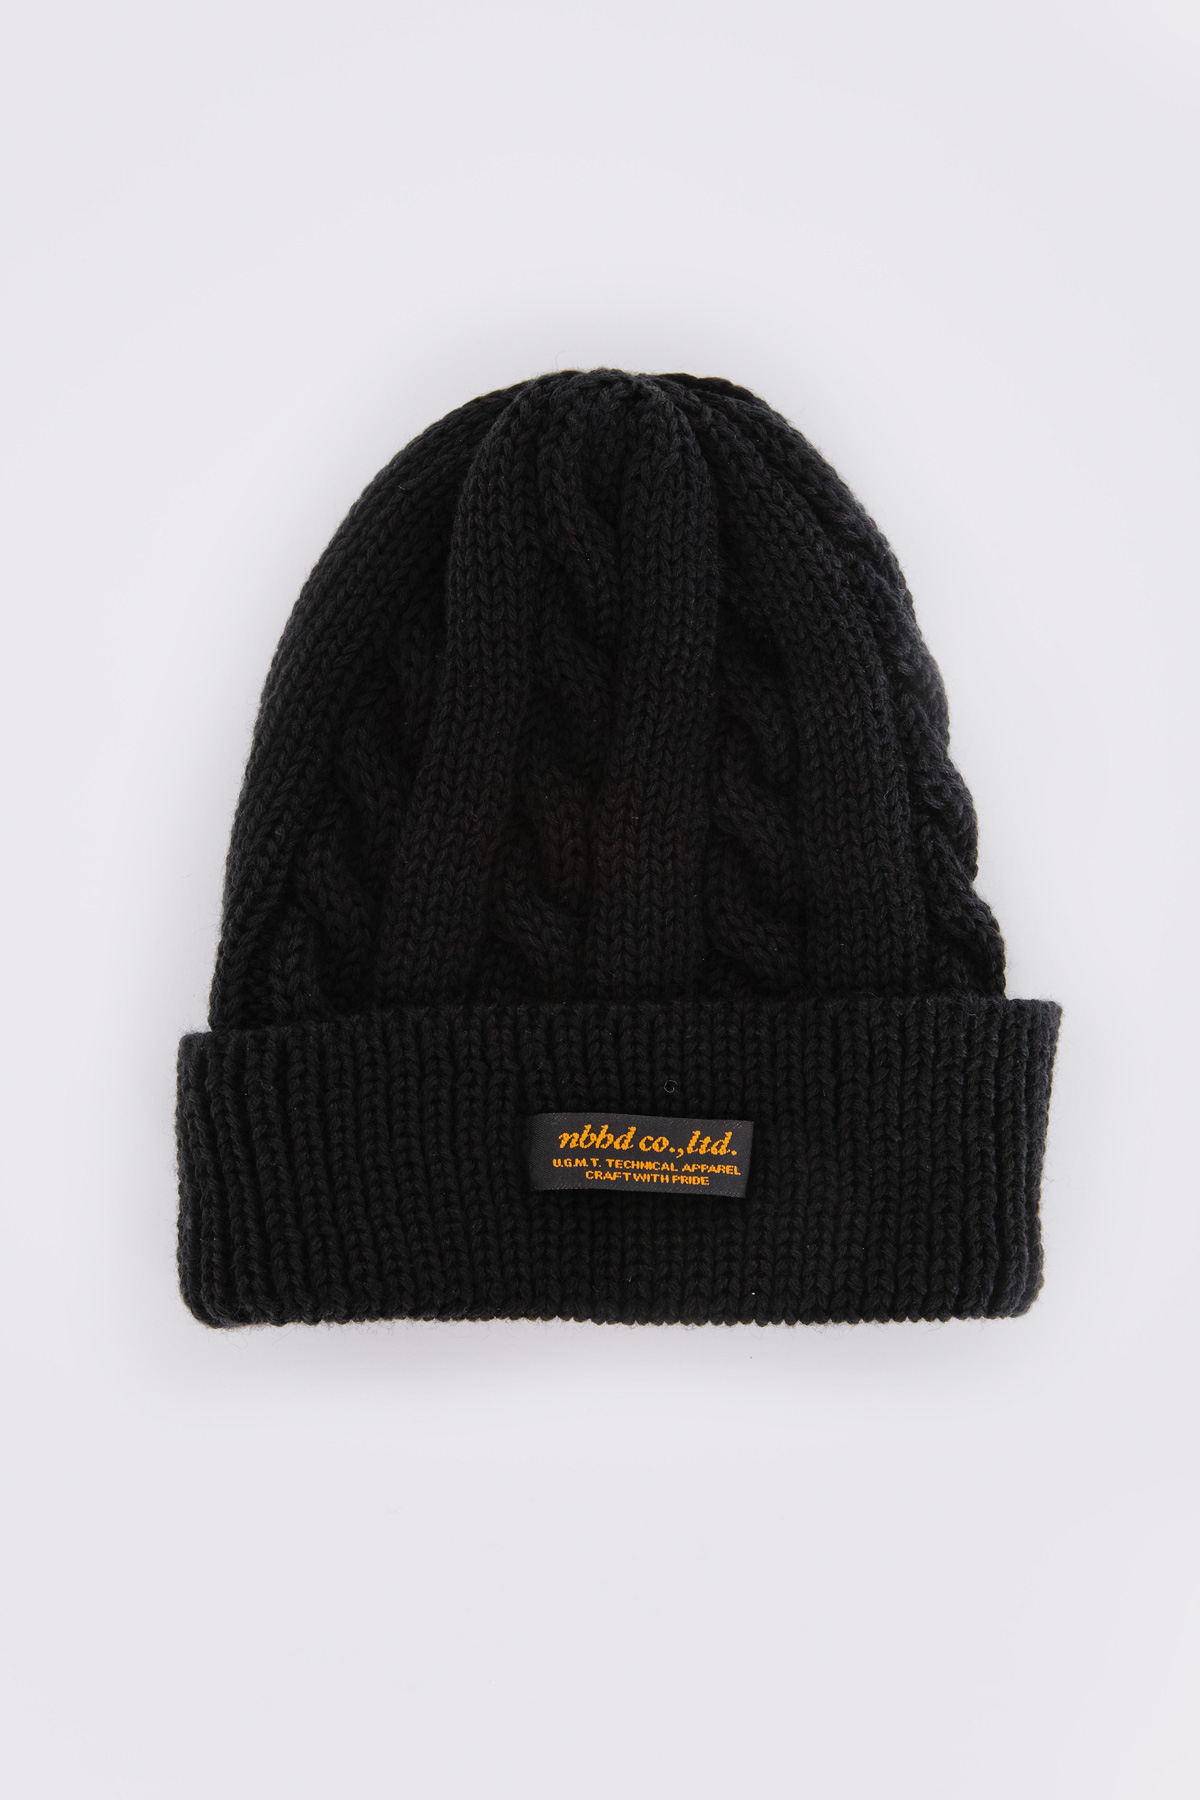 NEIGHBORHOOD Jeep Cap Black